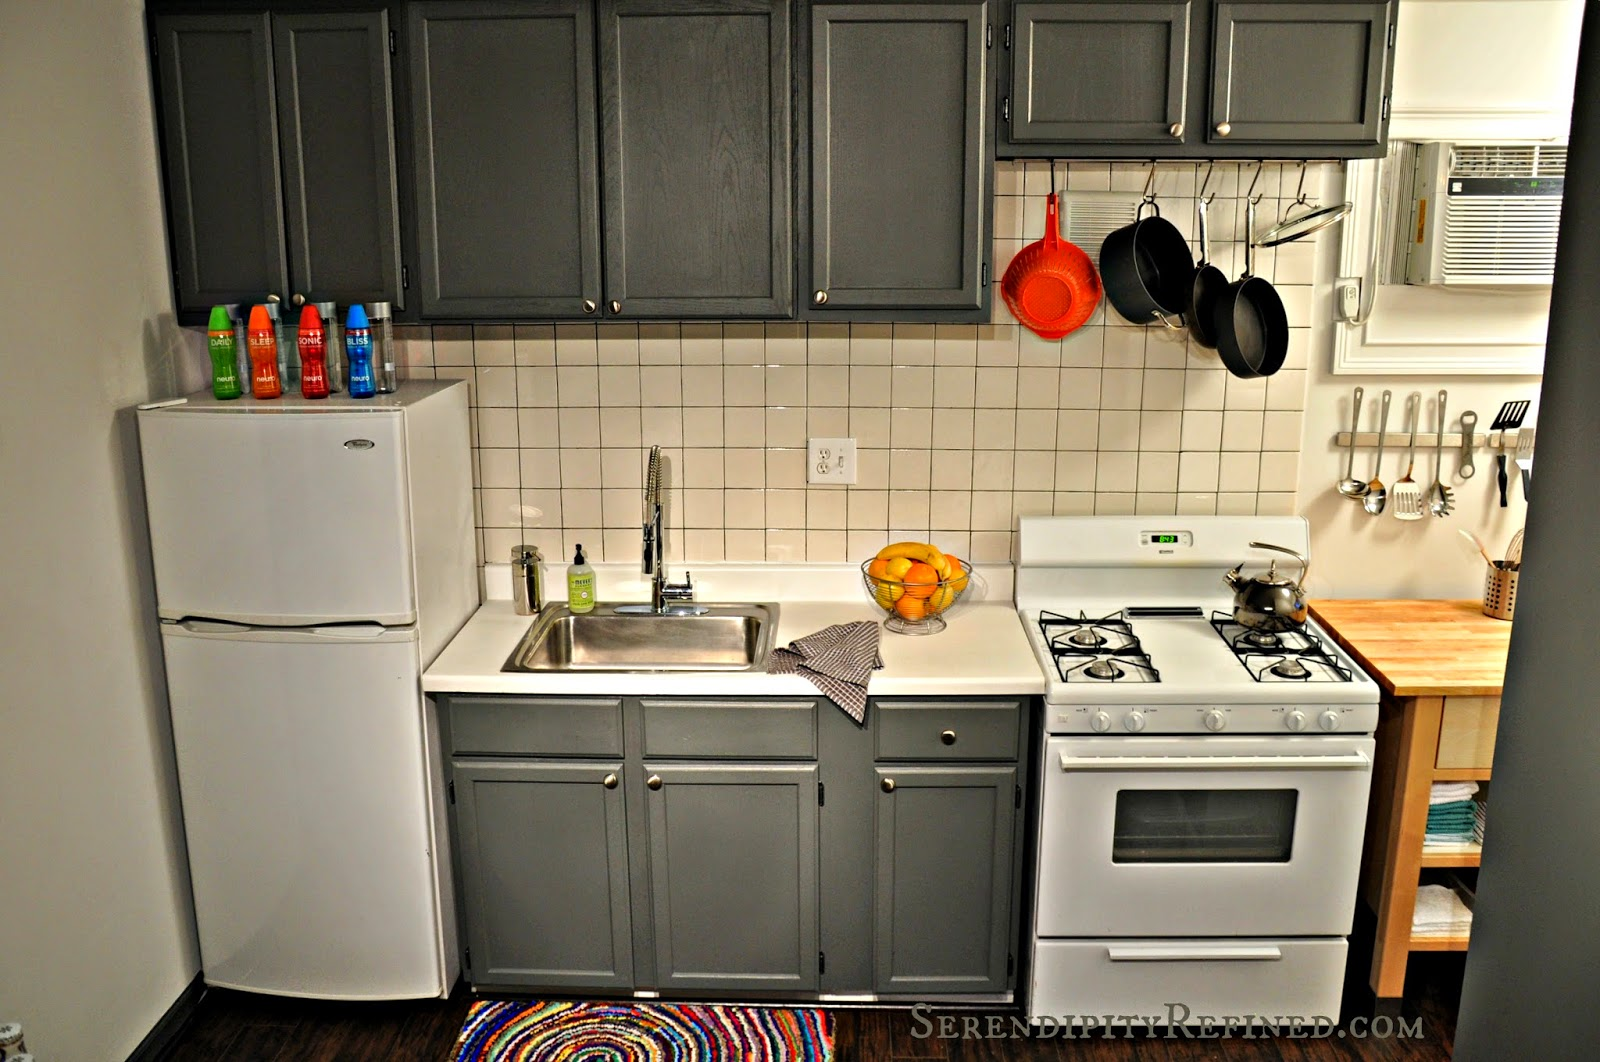 Diy kitchen makeover pthyd for Kitchen makeover ideas